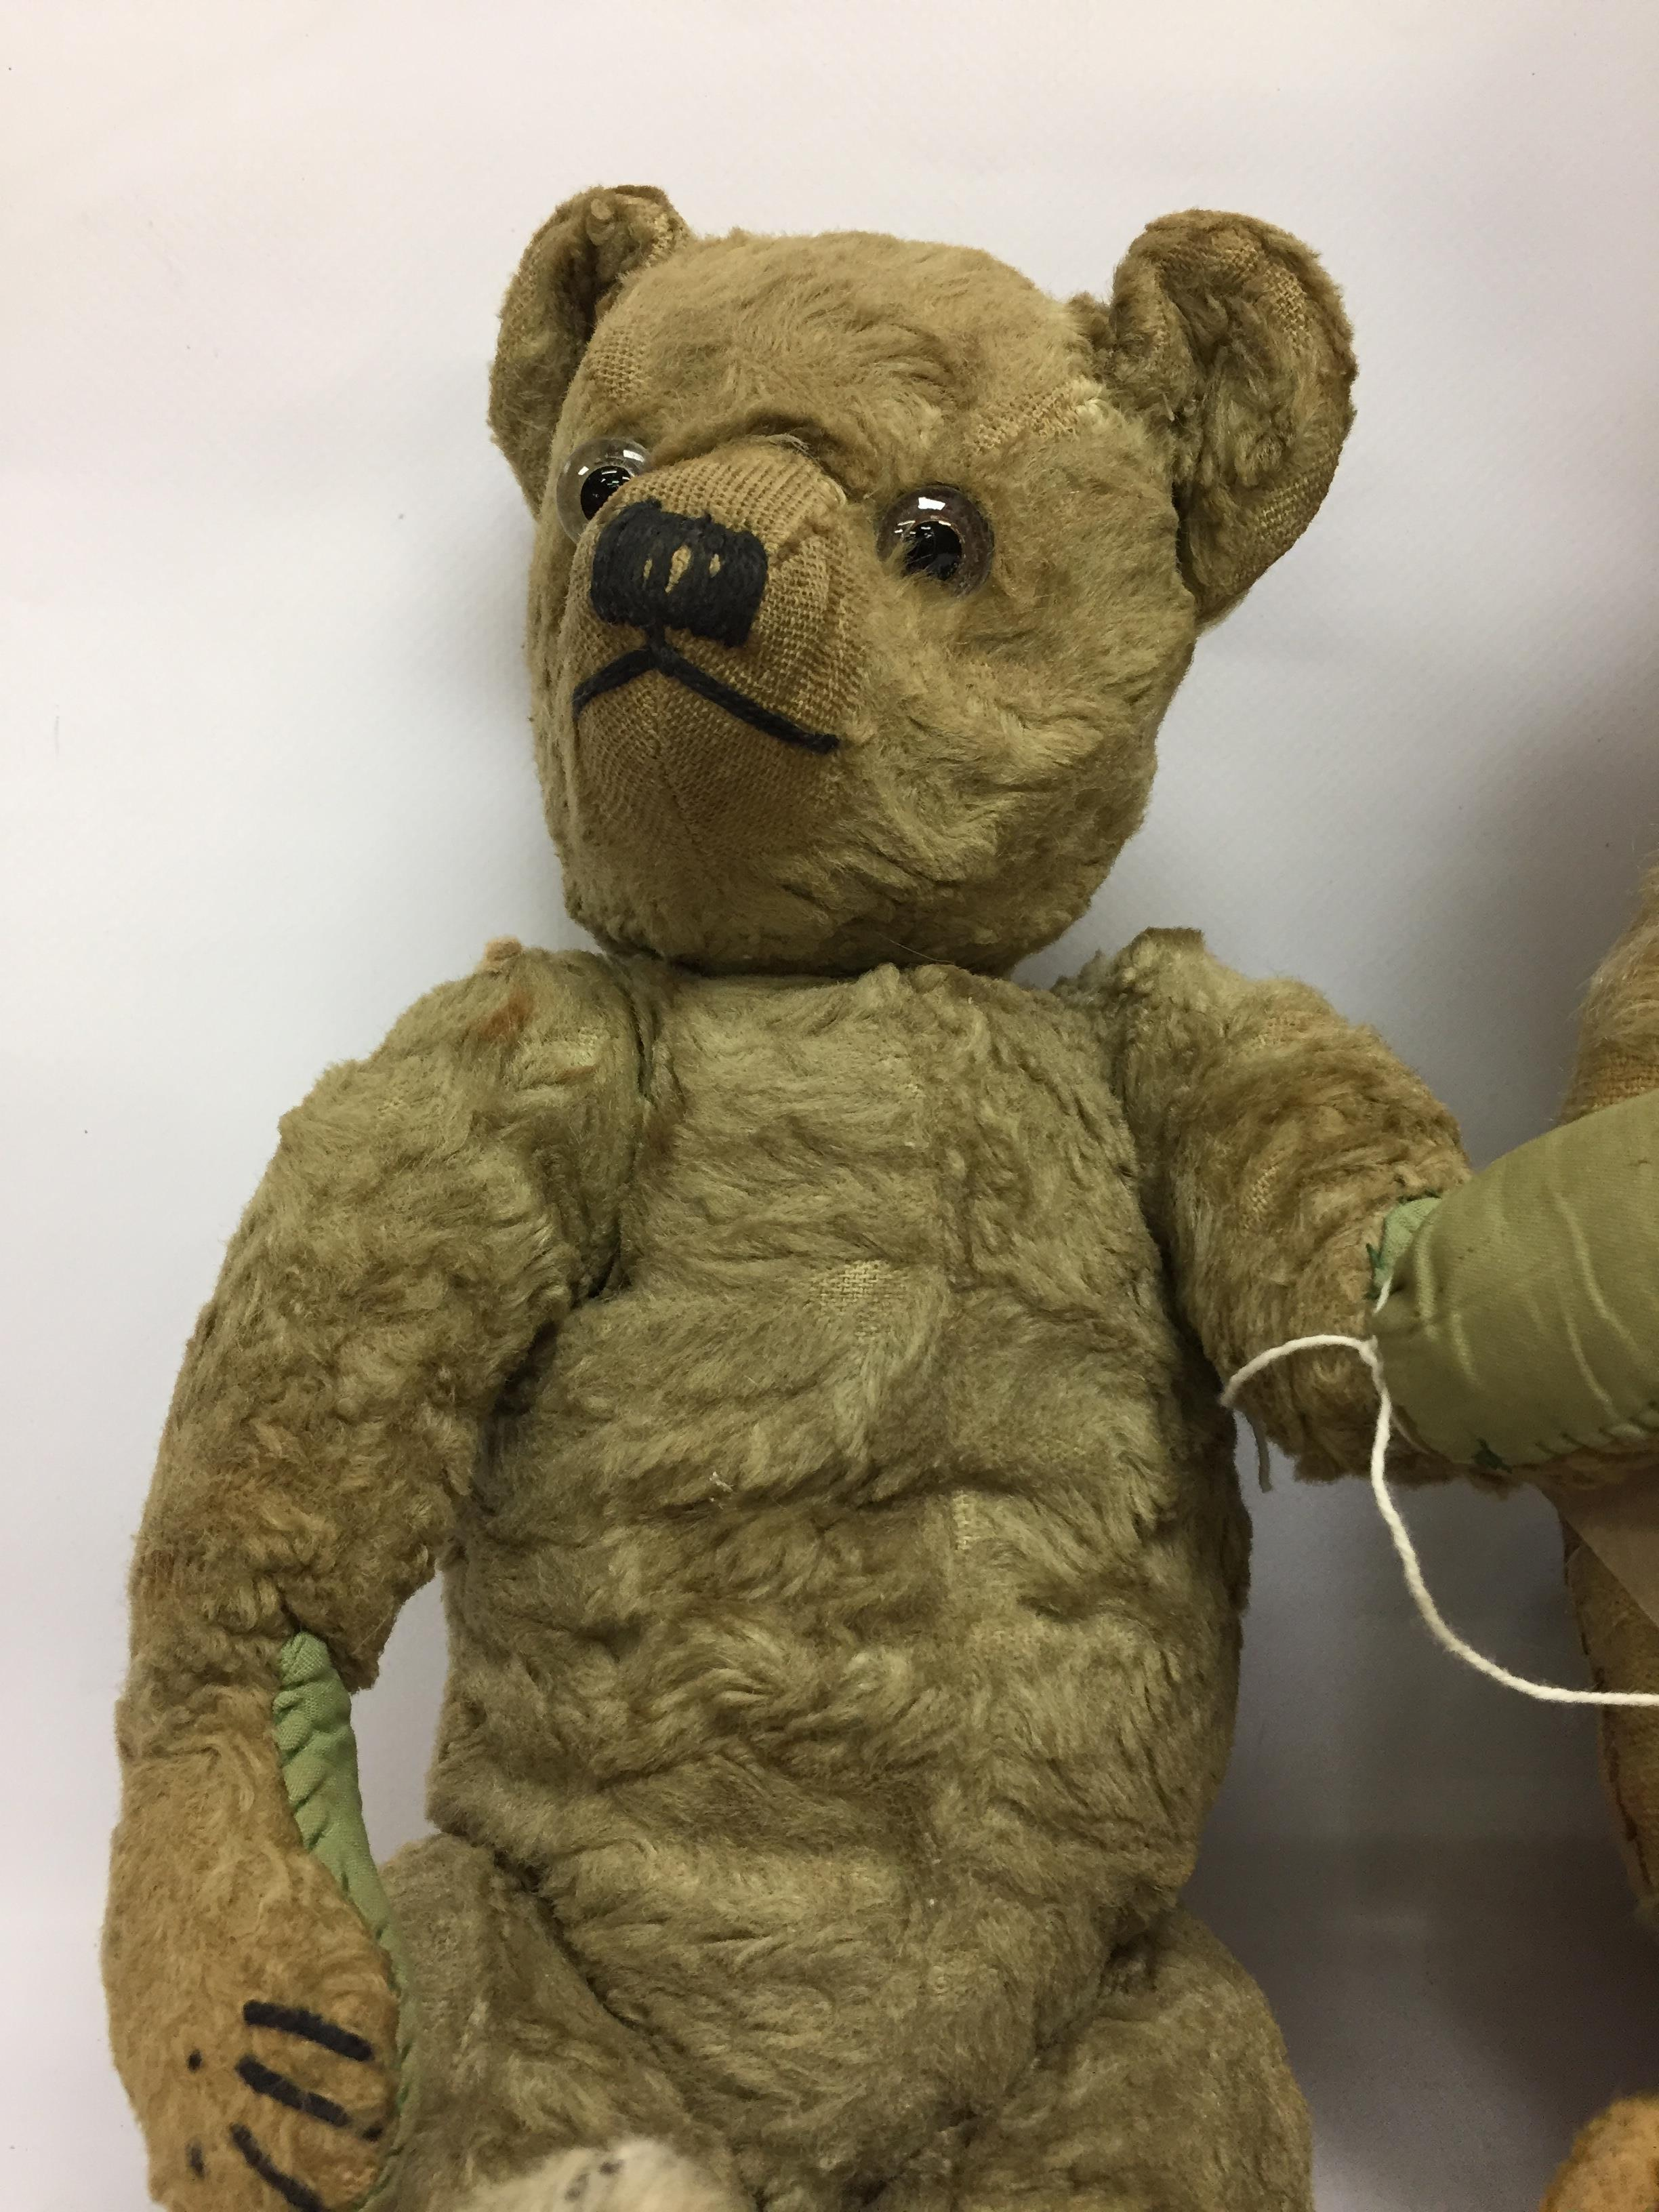 Lot 62 - EIGHT VINTAGE STRAW FILLED TEDDY BEARS ALL VERY WELL LOVED AND SHOWING SIGNS OF STRESS